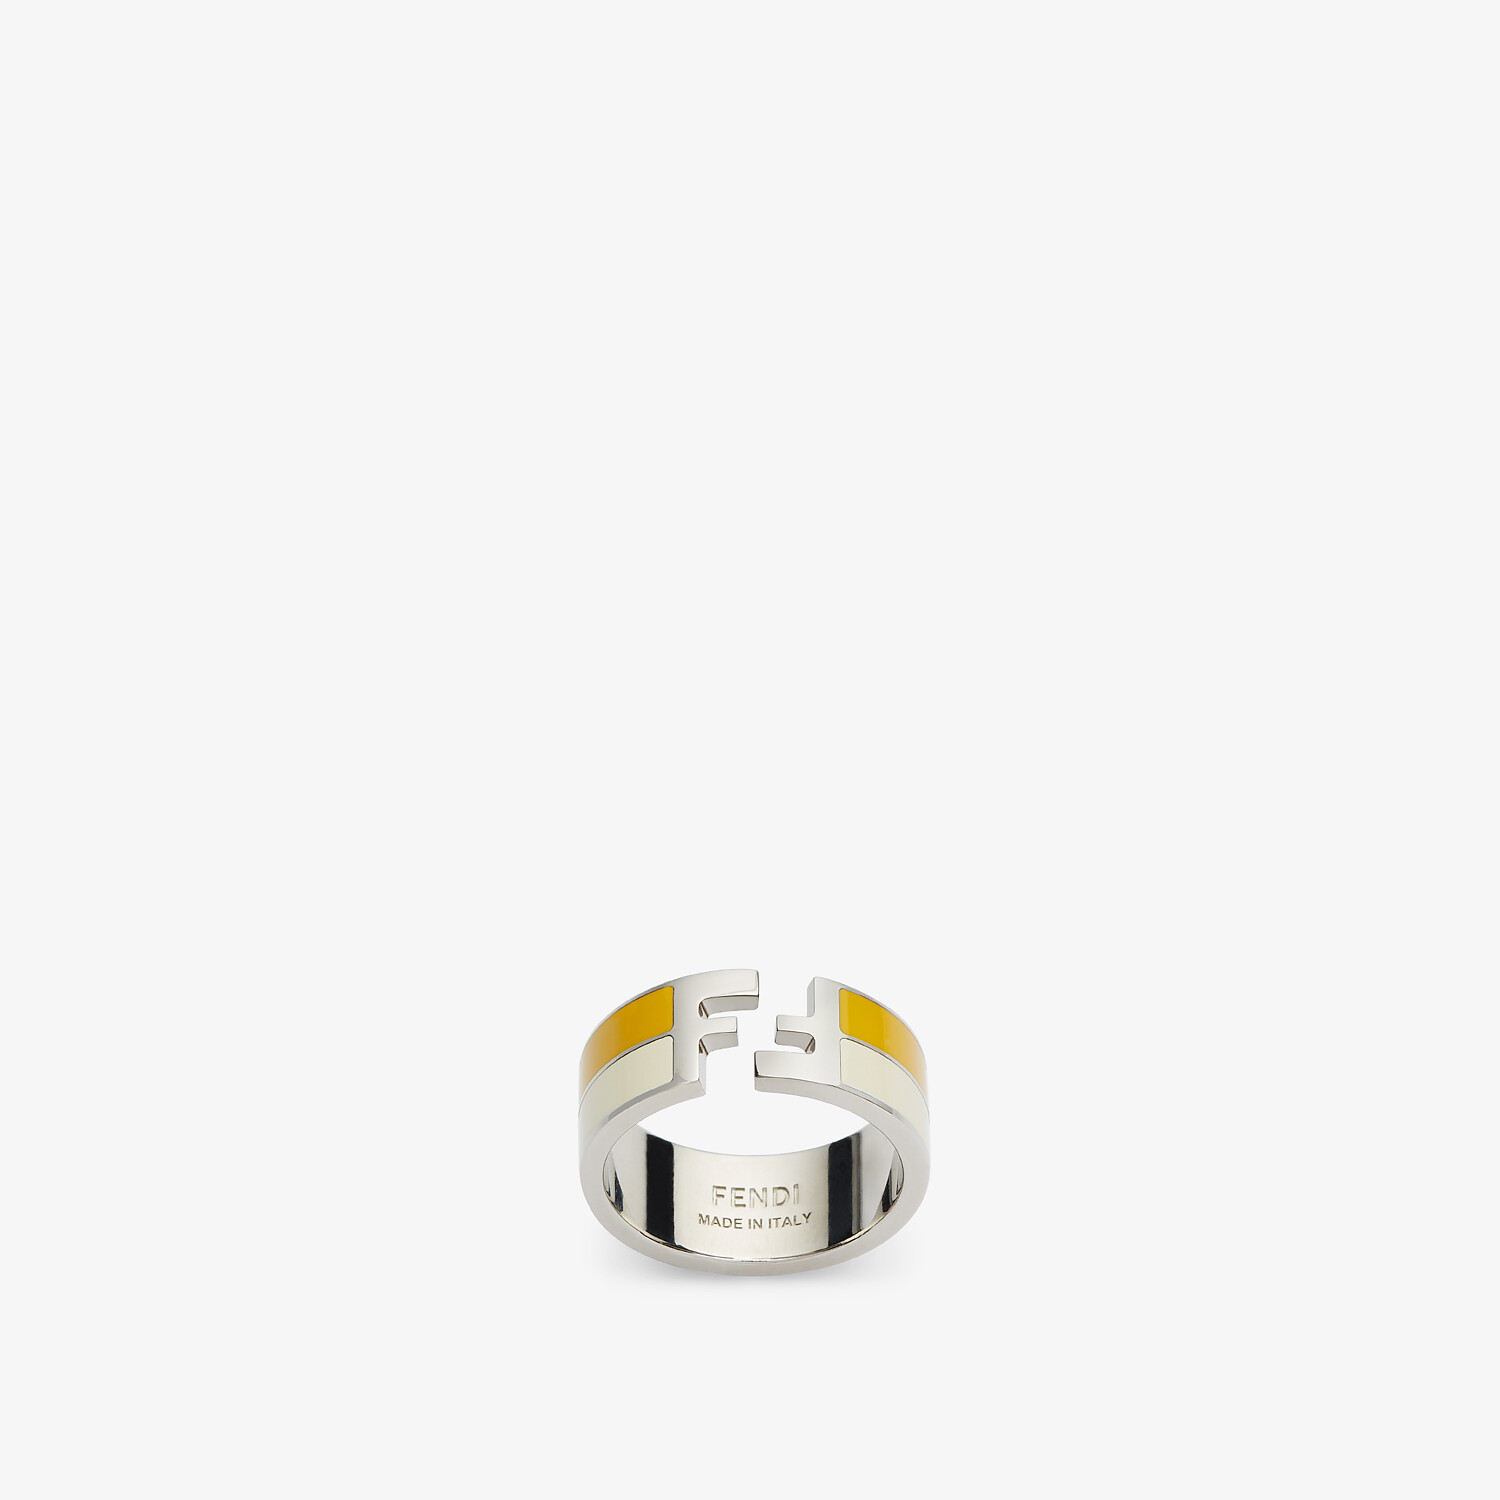 FENDI RING - Multicolor ring - view 1 detail